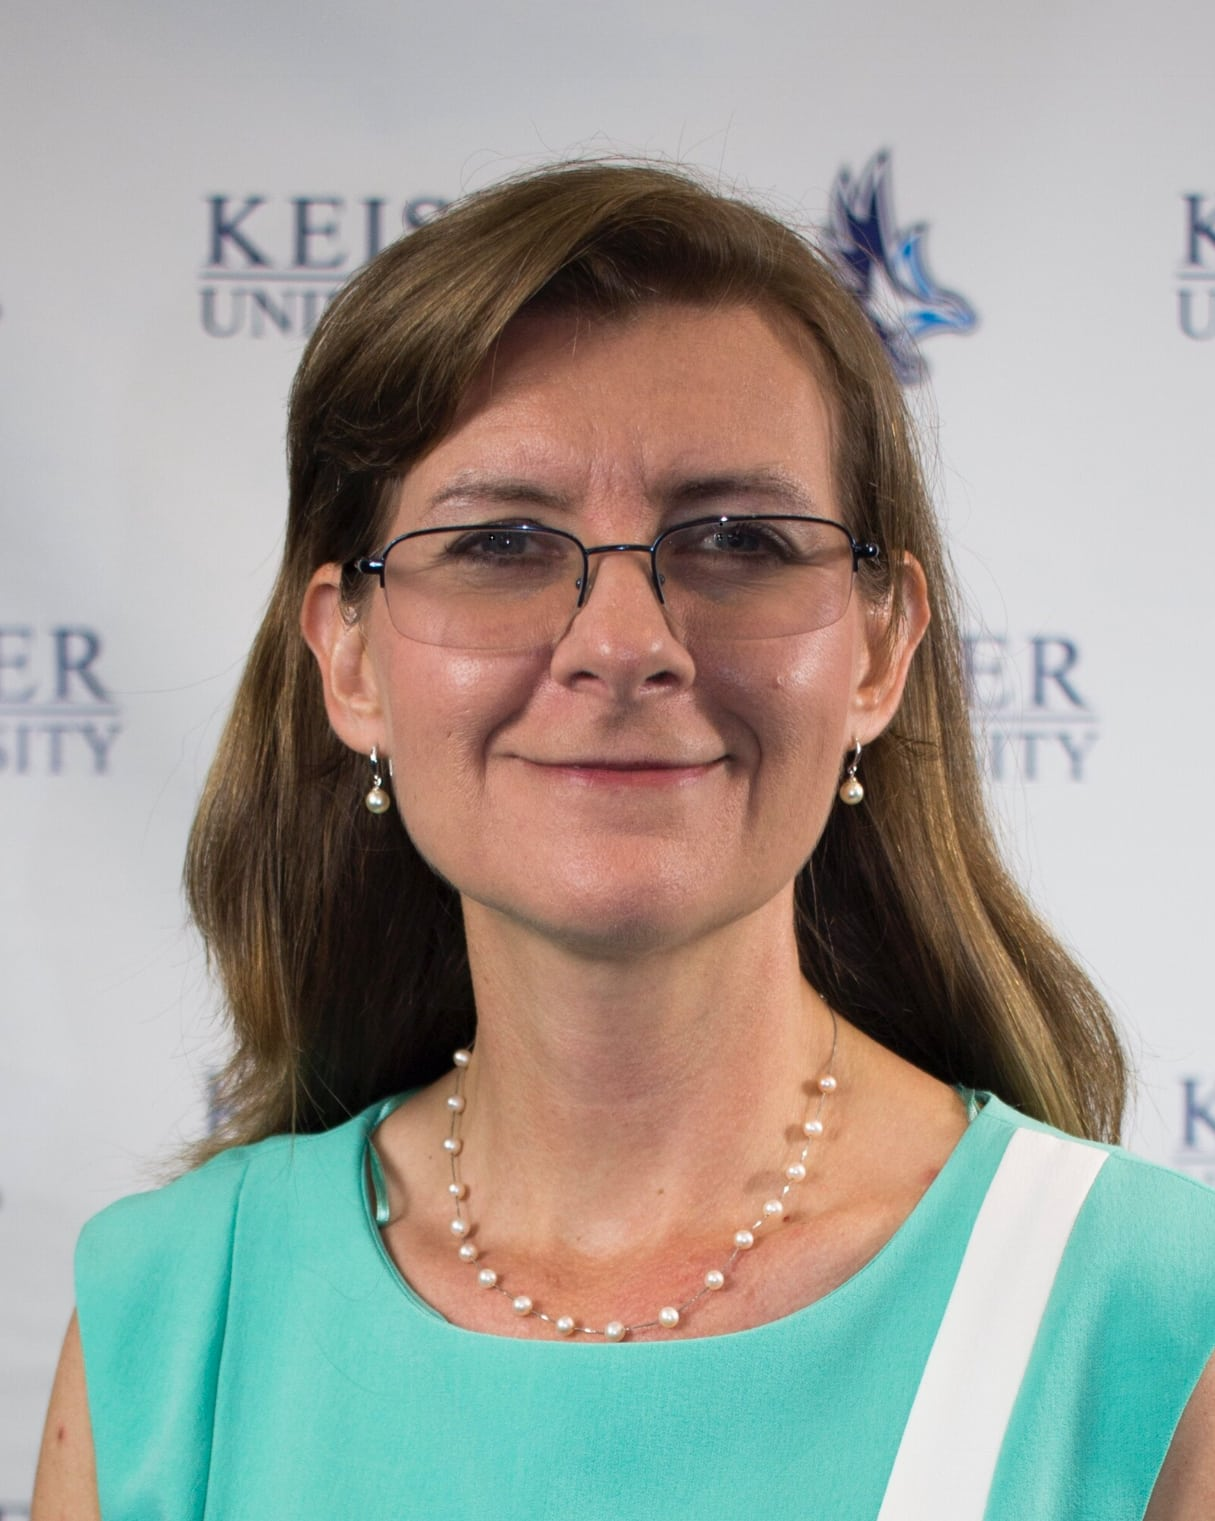 Tips for Academic Success: Keiser University Academic Dean Weighs In